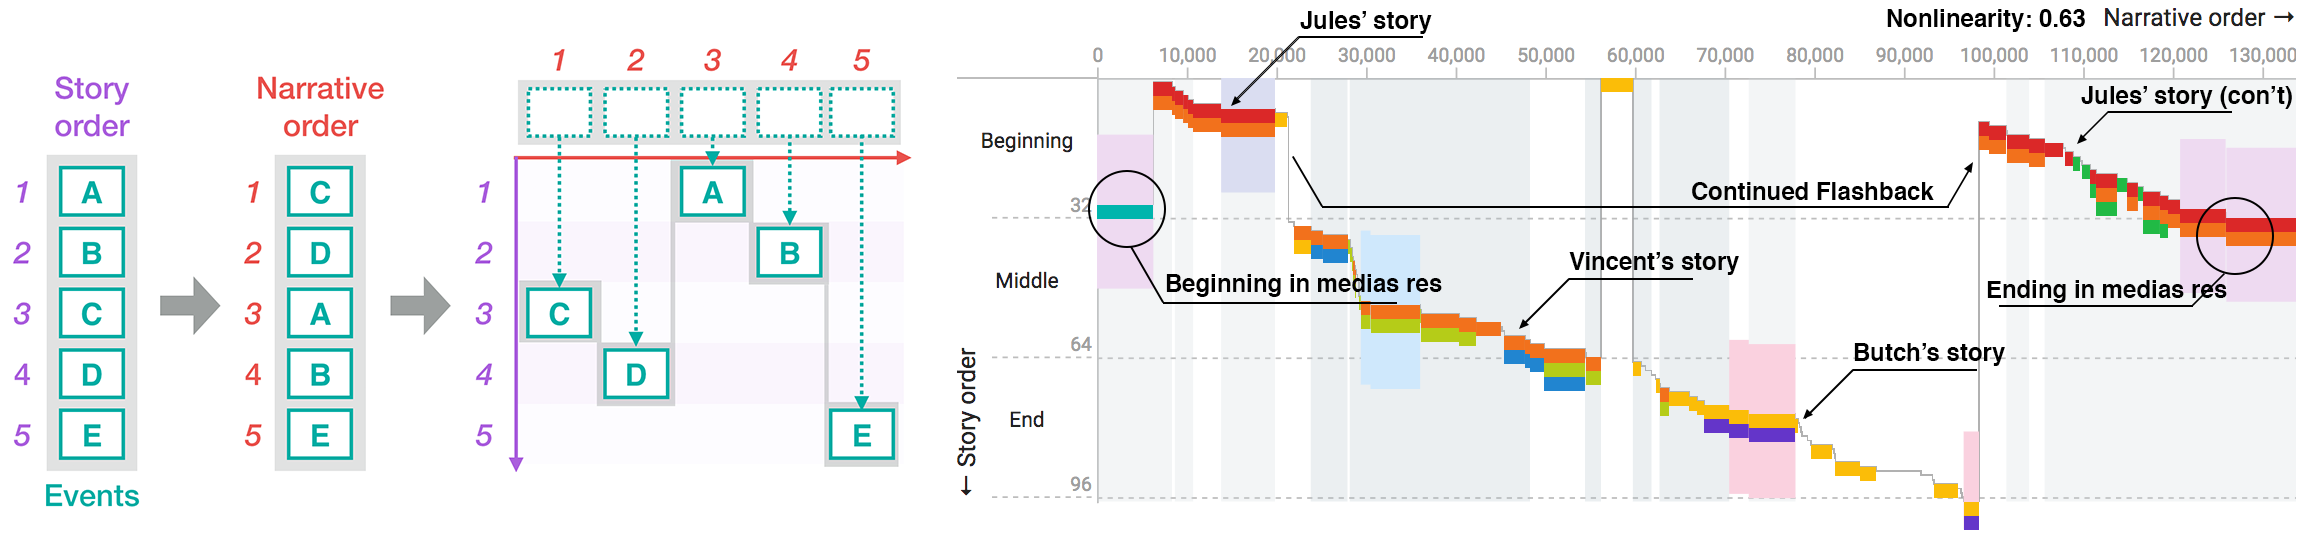 Visualizing Nonlinear Narratives with Story Curves